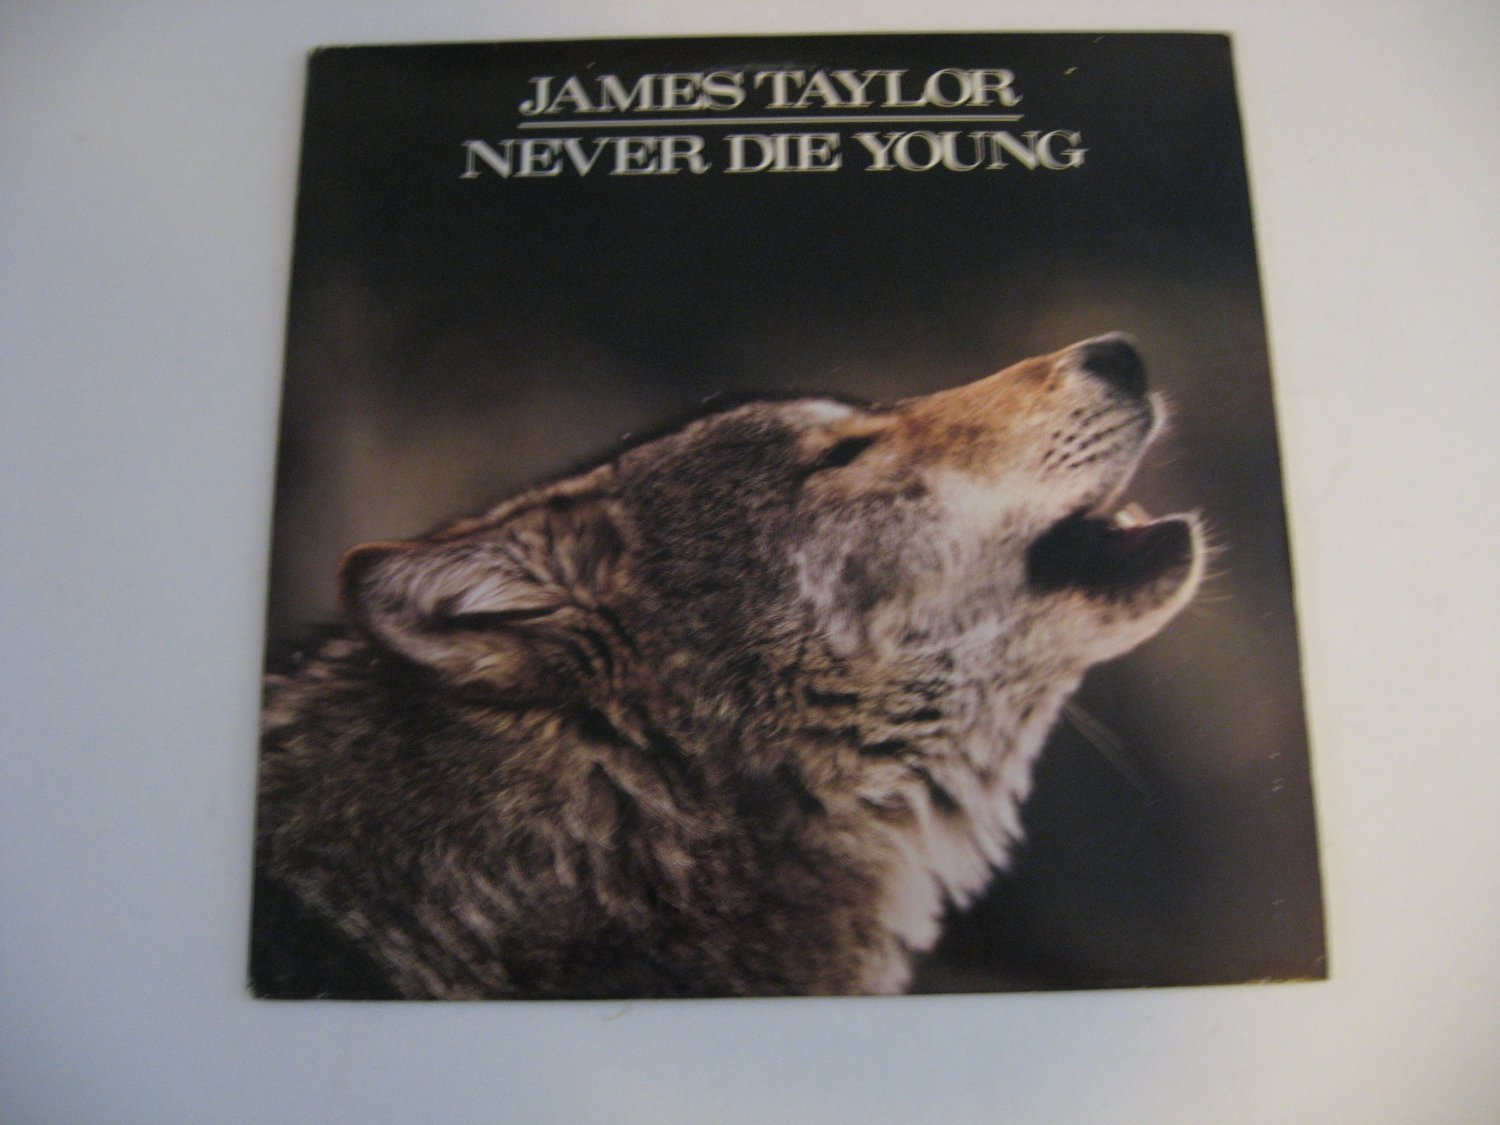 James Taylor - Never Die Young - Circa 1988